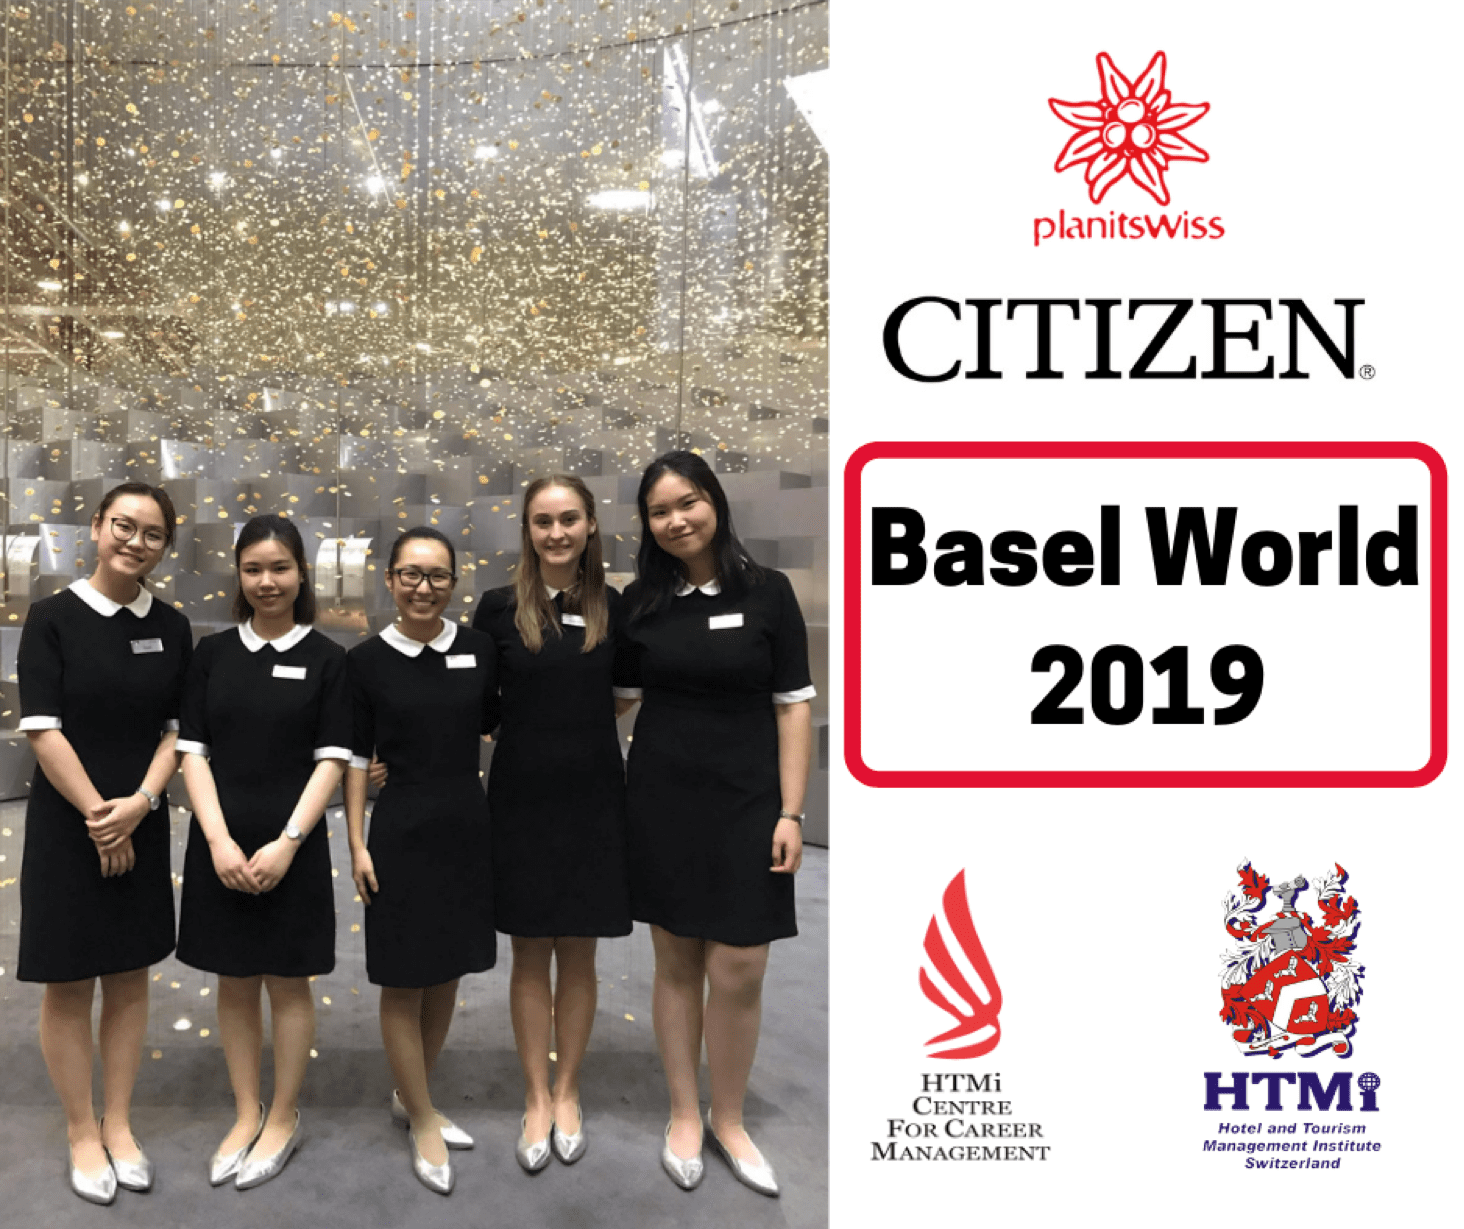 HTMi Students supporting Basel World 2019